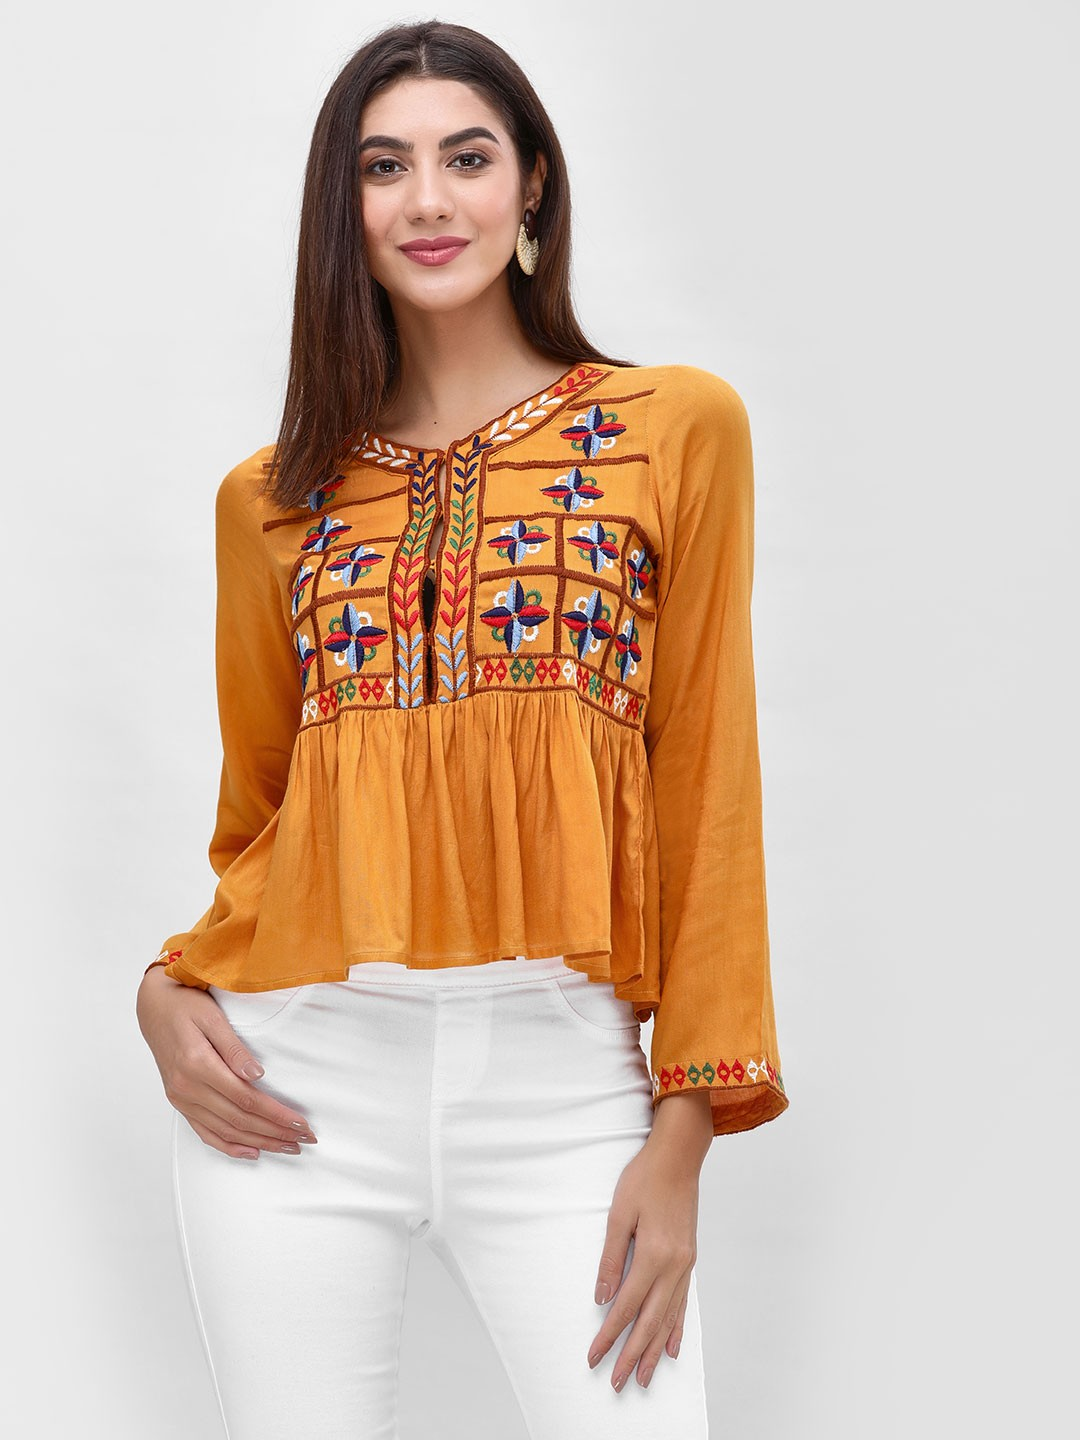 Rena Love Mustard Blouse With Embroidery 1